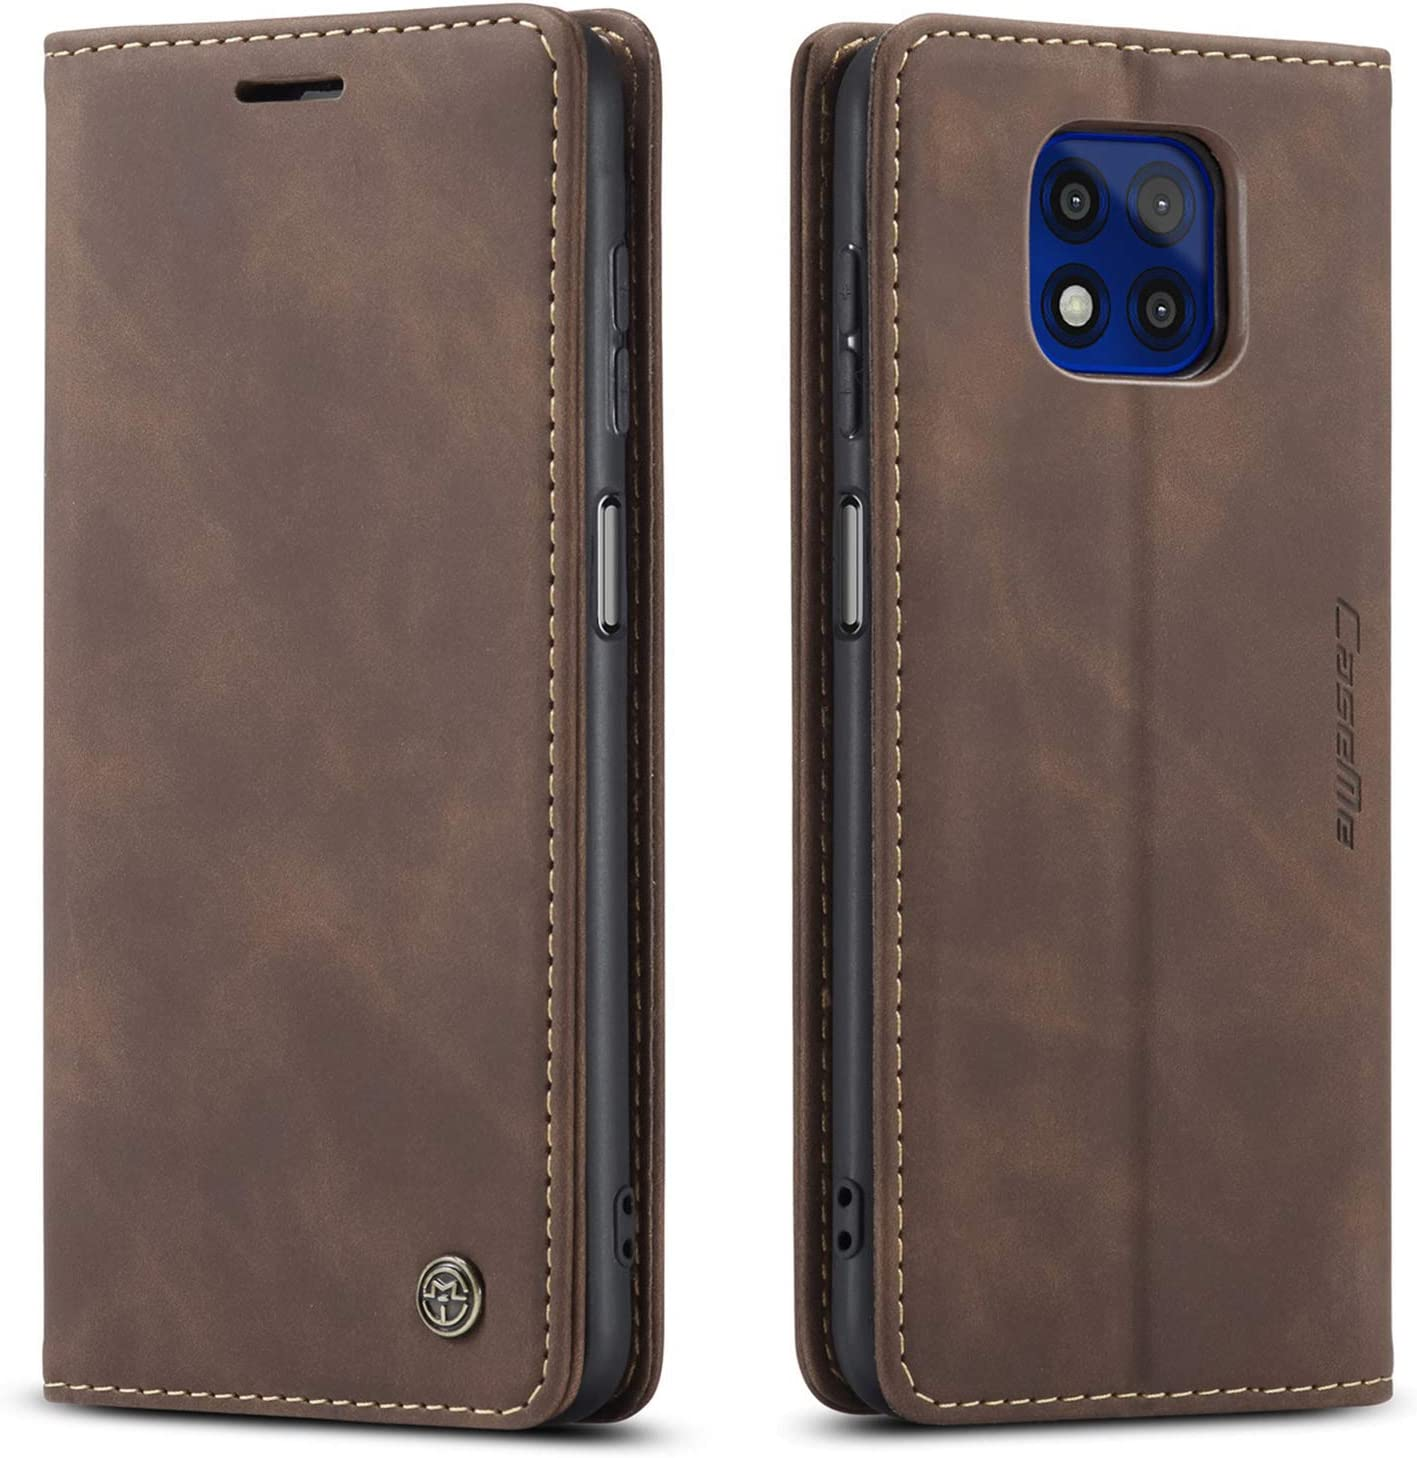 Kowauri Flip Case for Moto G Power 2021,Leather Wallet Case Classic Design with Card Slot and Magnetic Closure Flip Fold Case for Motorola Moto G Power 2021 (Coffee)